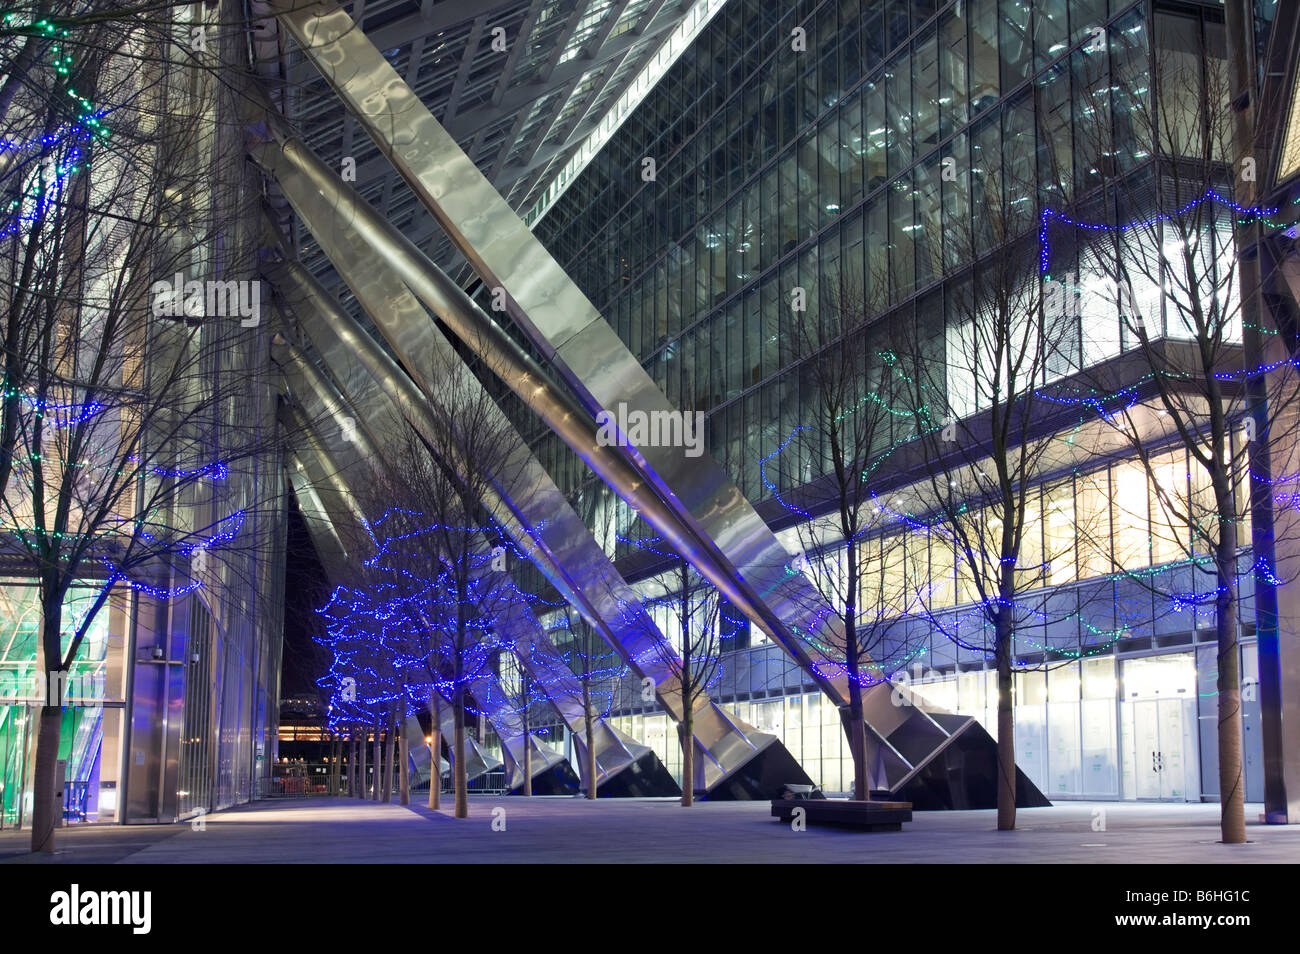 Broadgate Tower-  201 Bishopsgate - City of London. - Stock Image